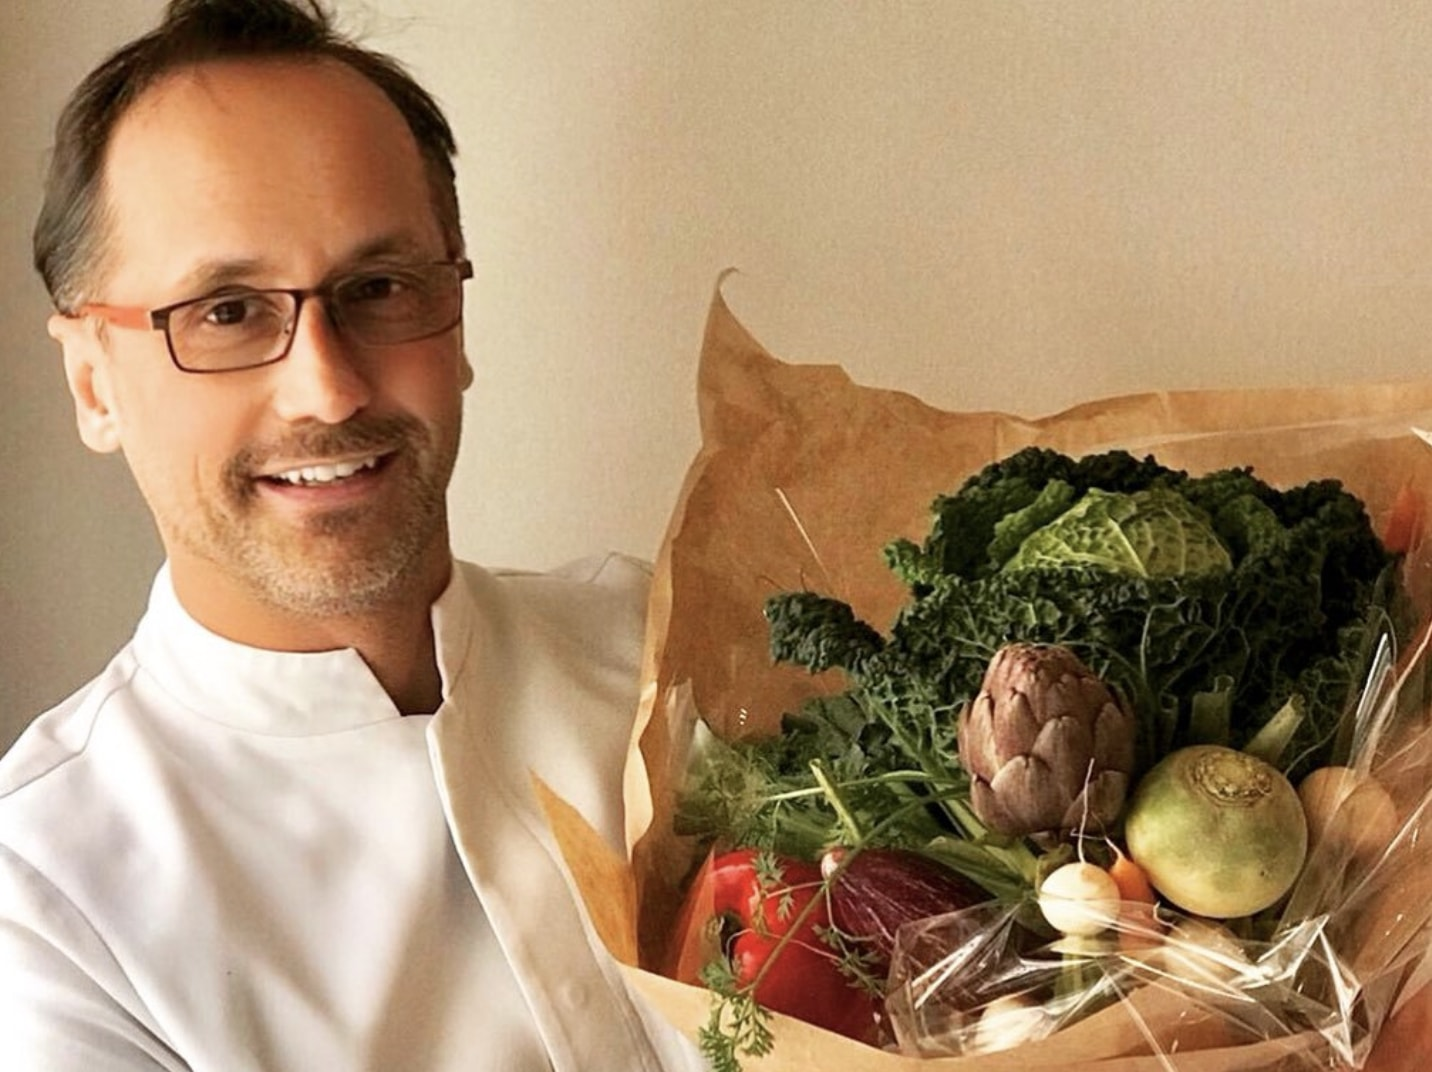 French chef and owner of Gauthier Soho vegan Alex Gauthier